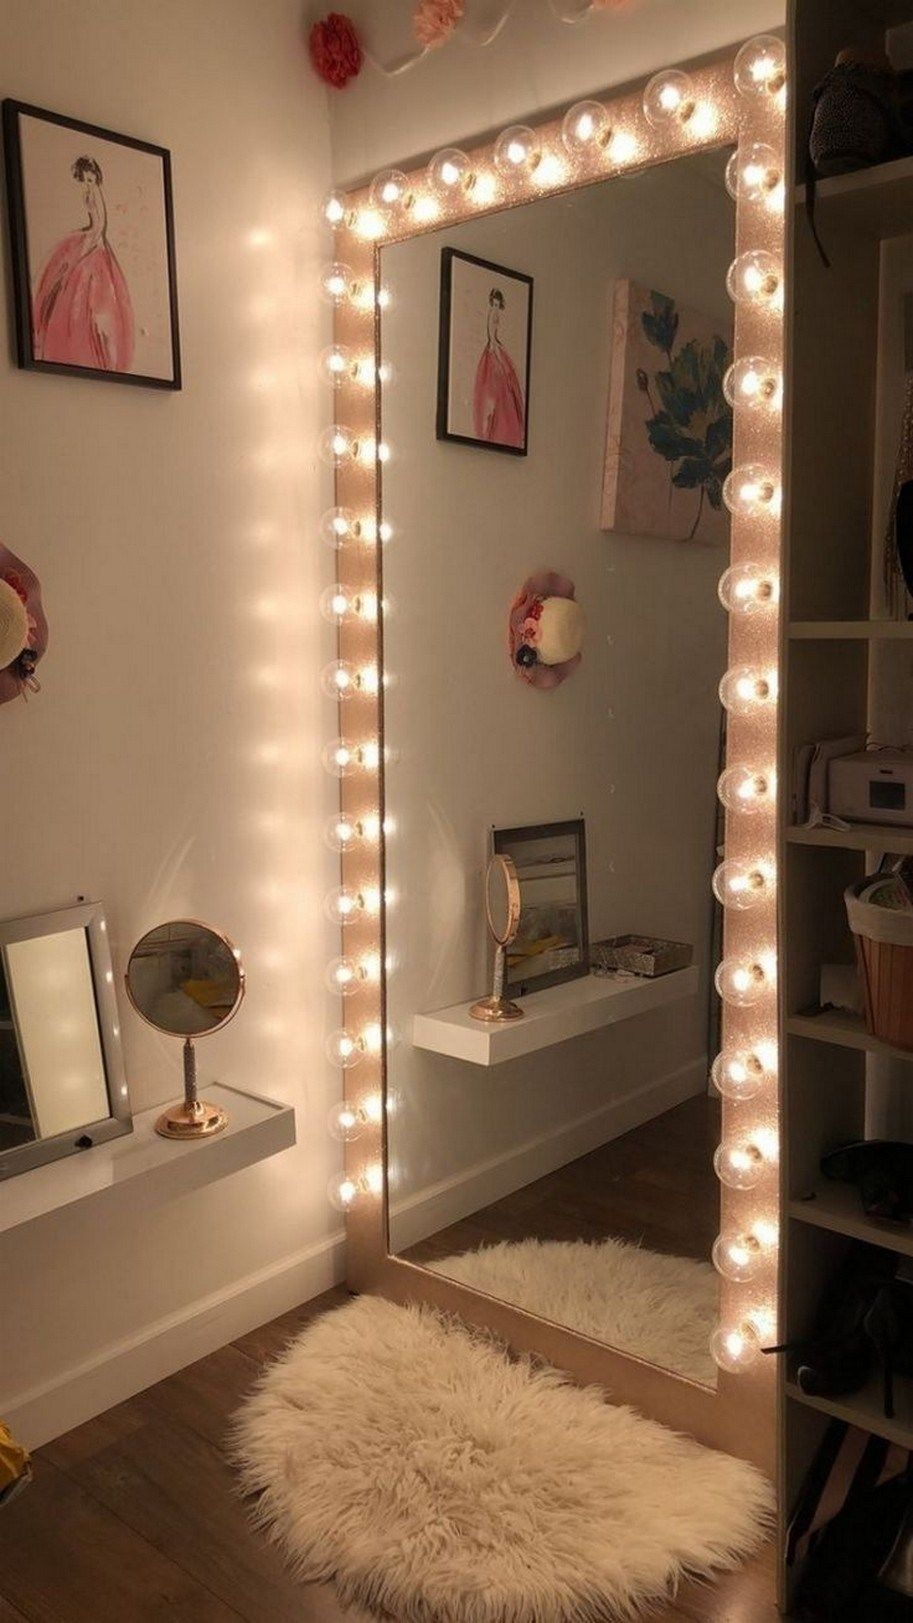 94 Small Bedroom Ideas That Are Look Stylishly Space Saving 8 Home Designs Pinterest Room Decor Dorm Room Inspiration Bedroom Decor